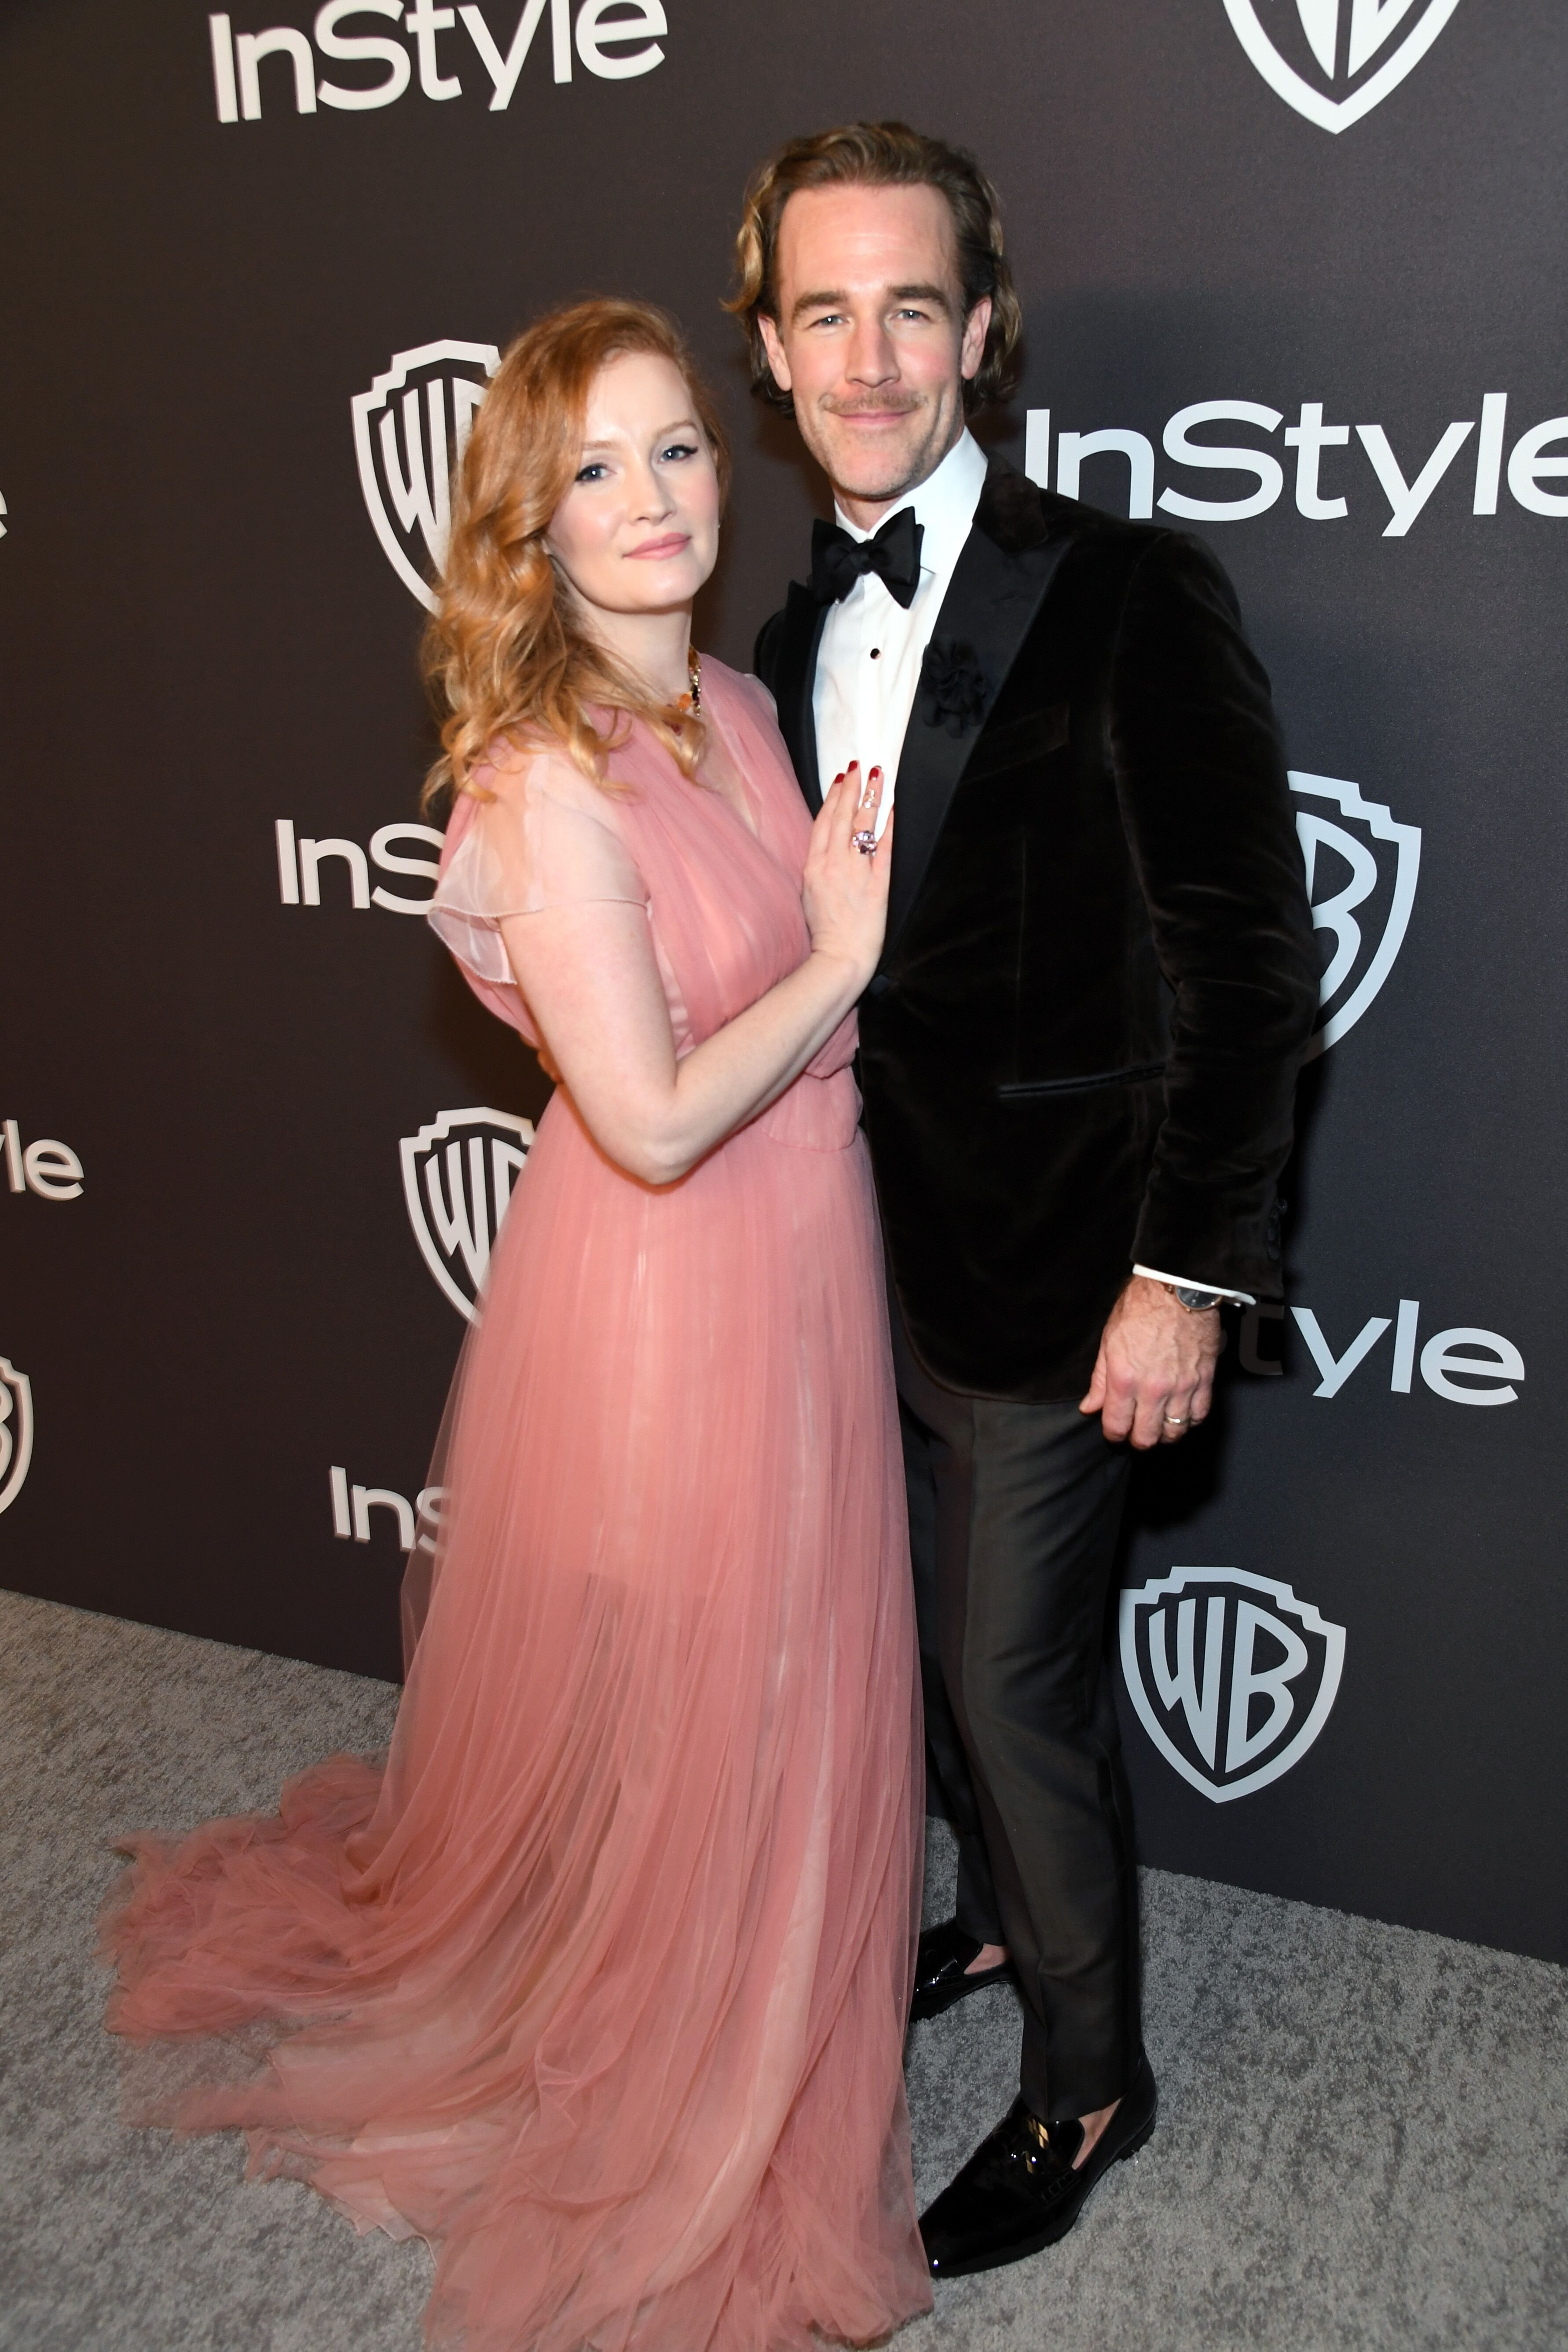 Kimberly Brook (L) and James Van Der Beek attend the 2019 InStyle and Warner Bros. 76th Annual Golden Globe Awards Post-Party at The Beverly Hilton Hotel on January 6, 2019 in Beverly Hills, California | Photo: Getty Images